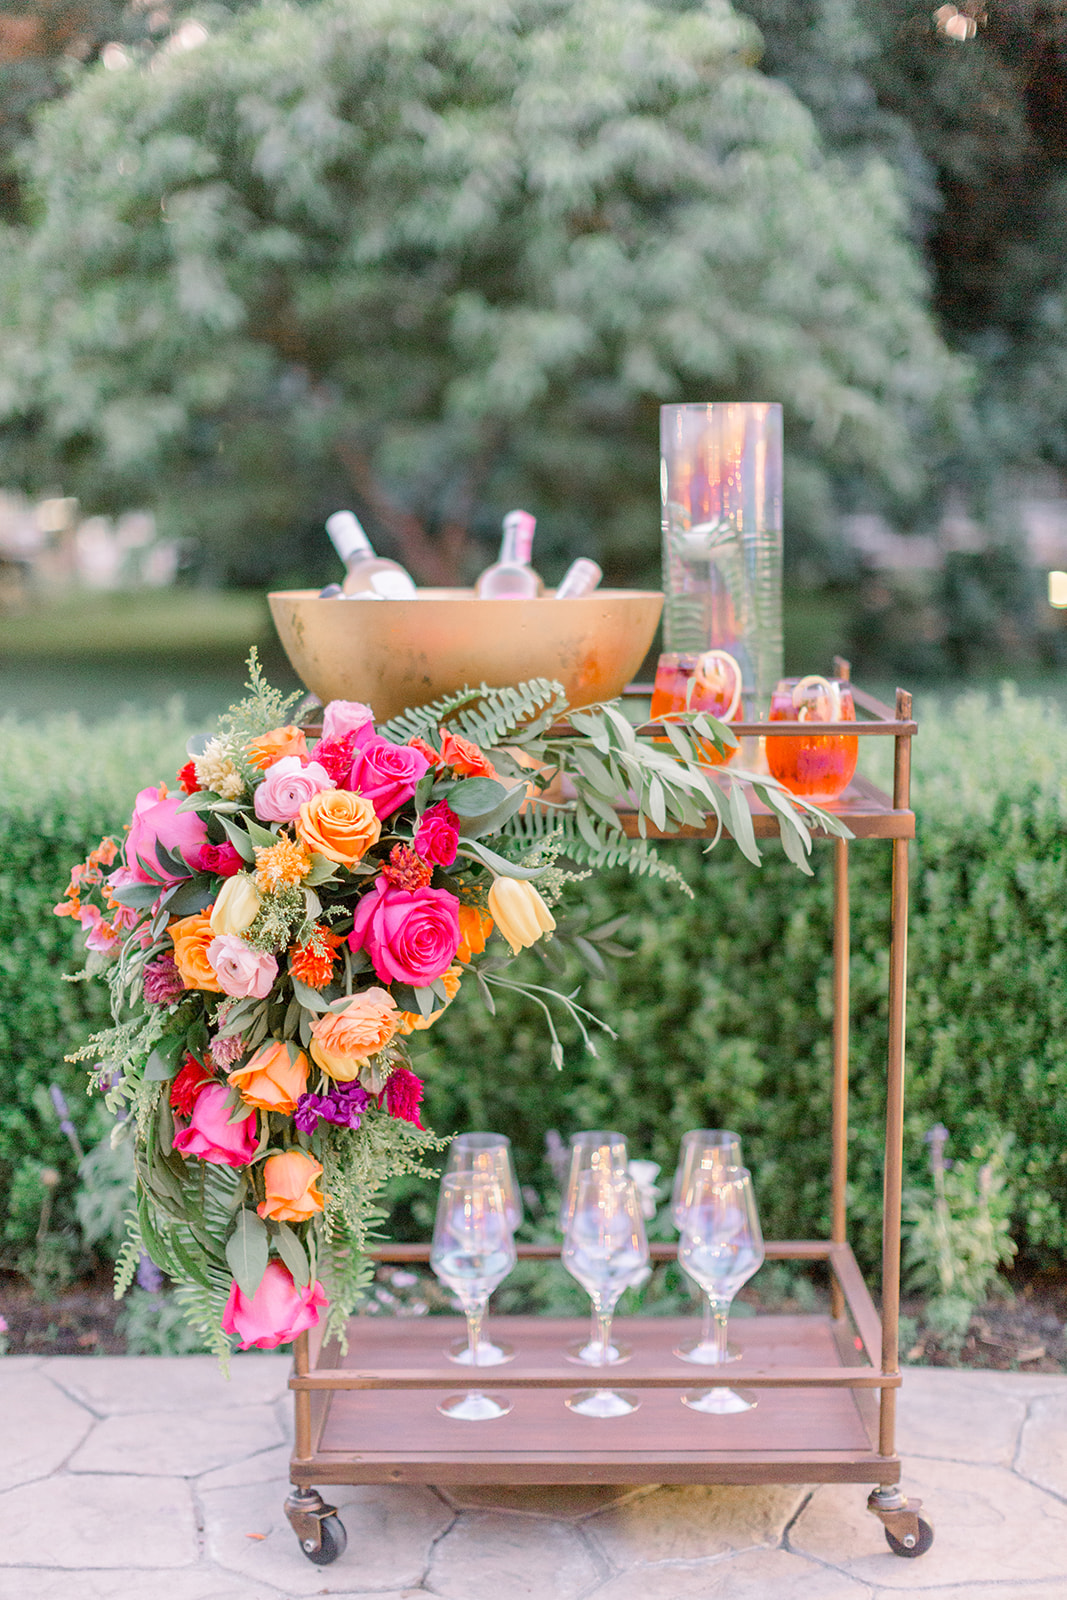 Bright and bold wedding bar cart by CH&LER